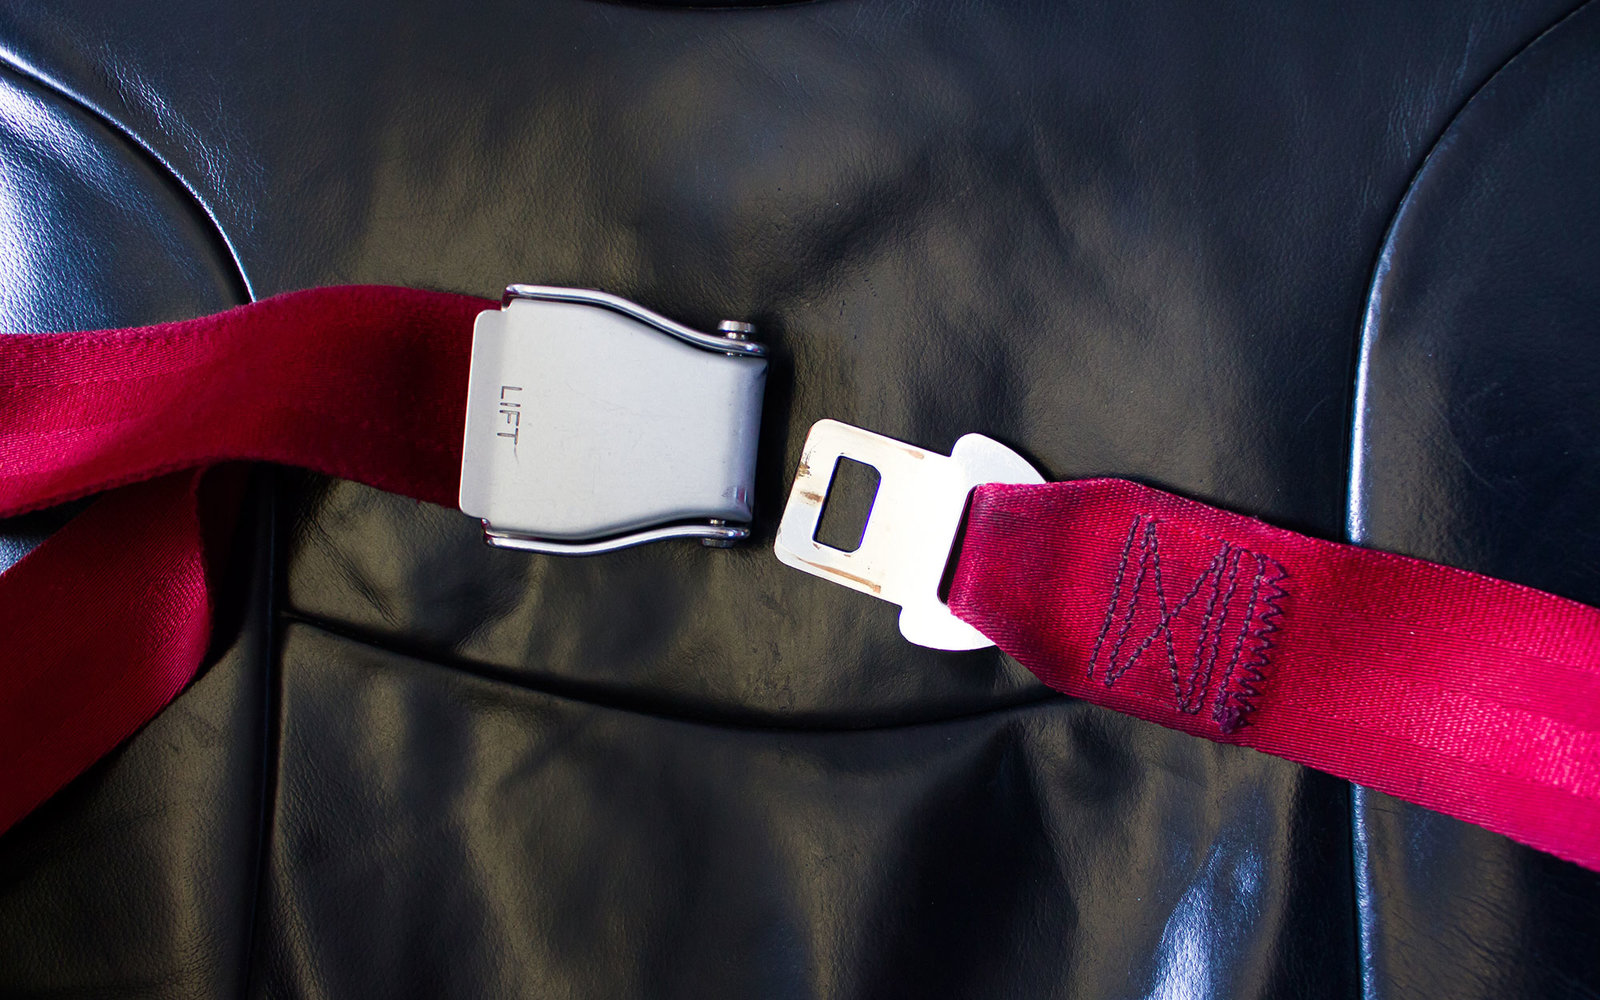 seat belt on airplane for safety